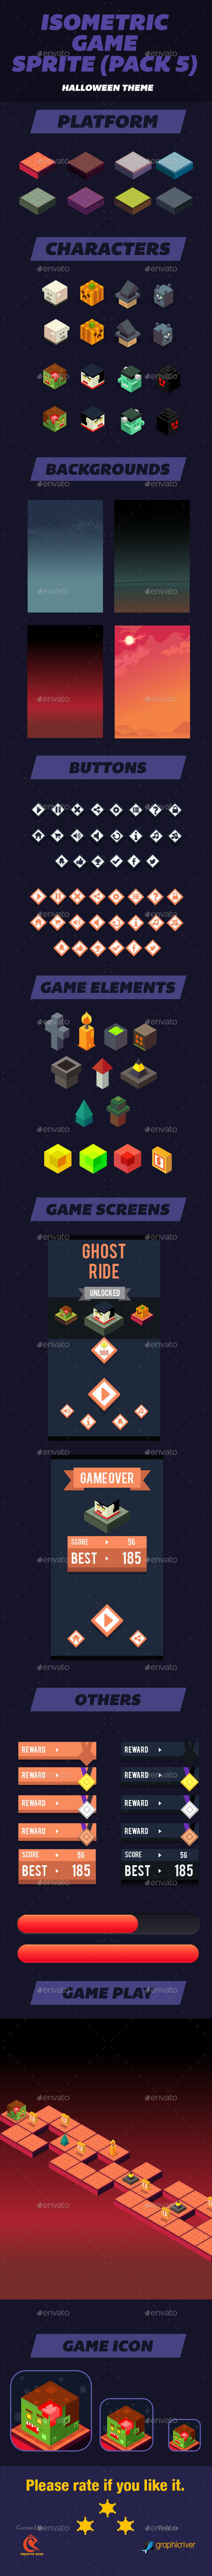 Isometric Game Assets Halloween - User Interfaces Game Assets